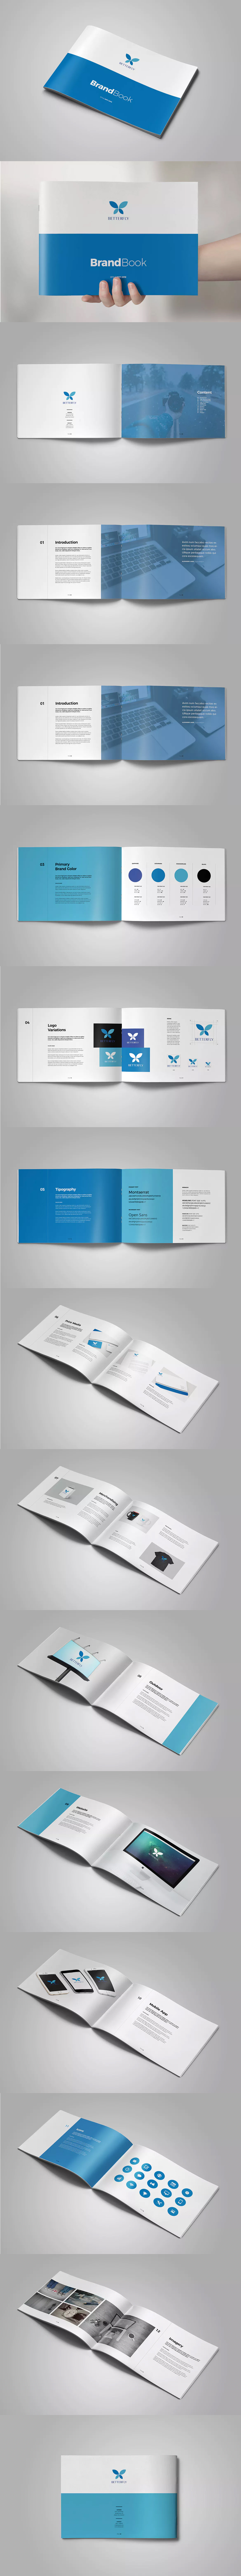 Brandbook Template InDesign INDD A4 | Brochure Templates | Pinterest